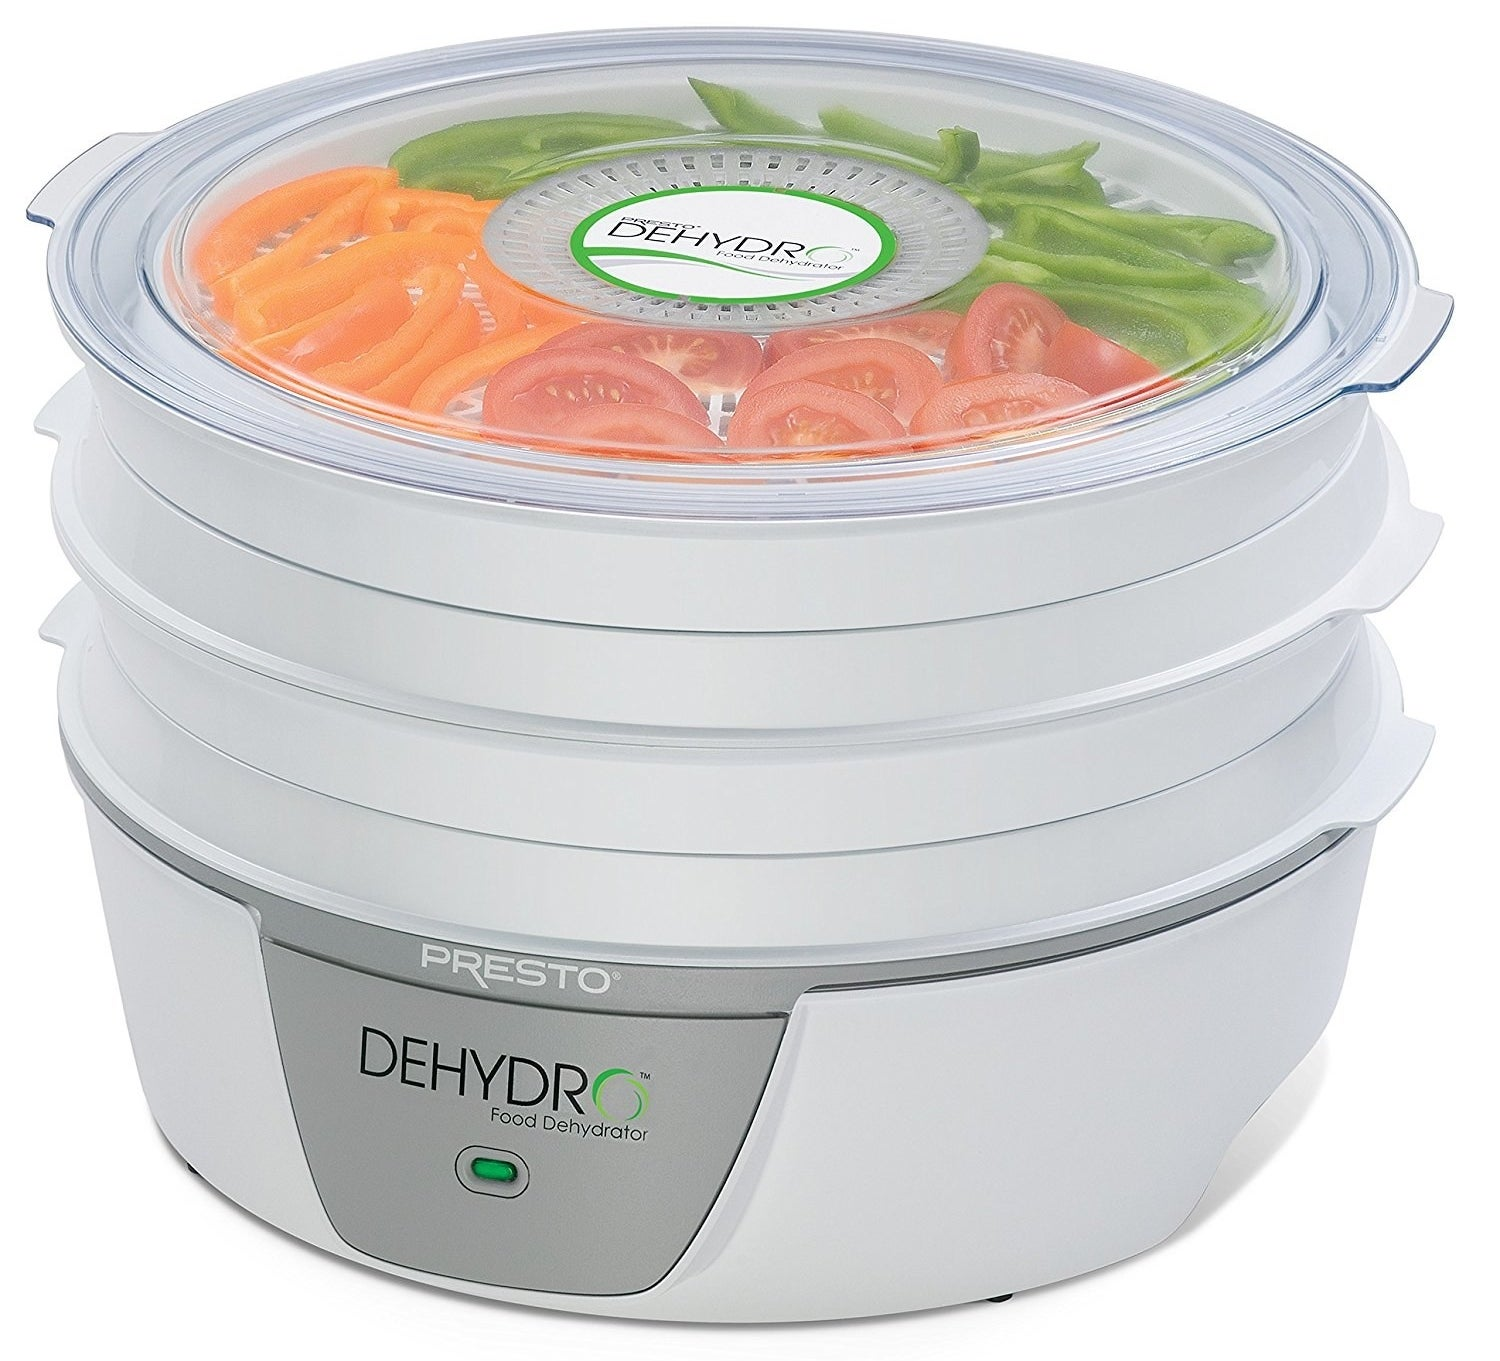 A handy dehydrator for yet another way to eat and store excess food. Try making dried fruit and peppers, chips, or even jerky!